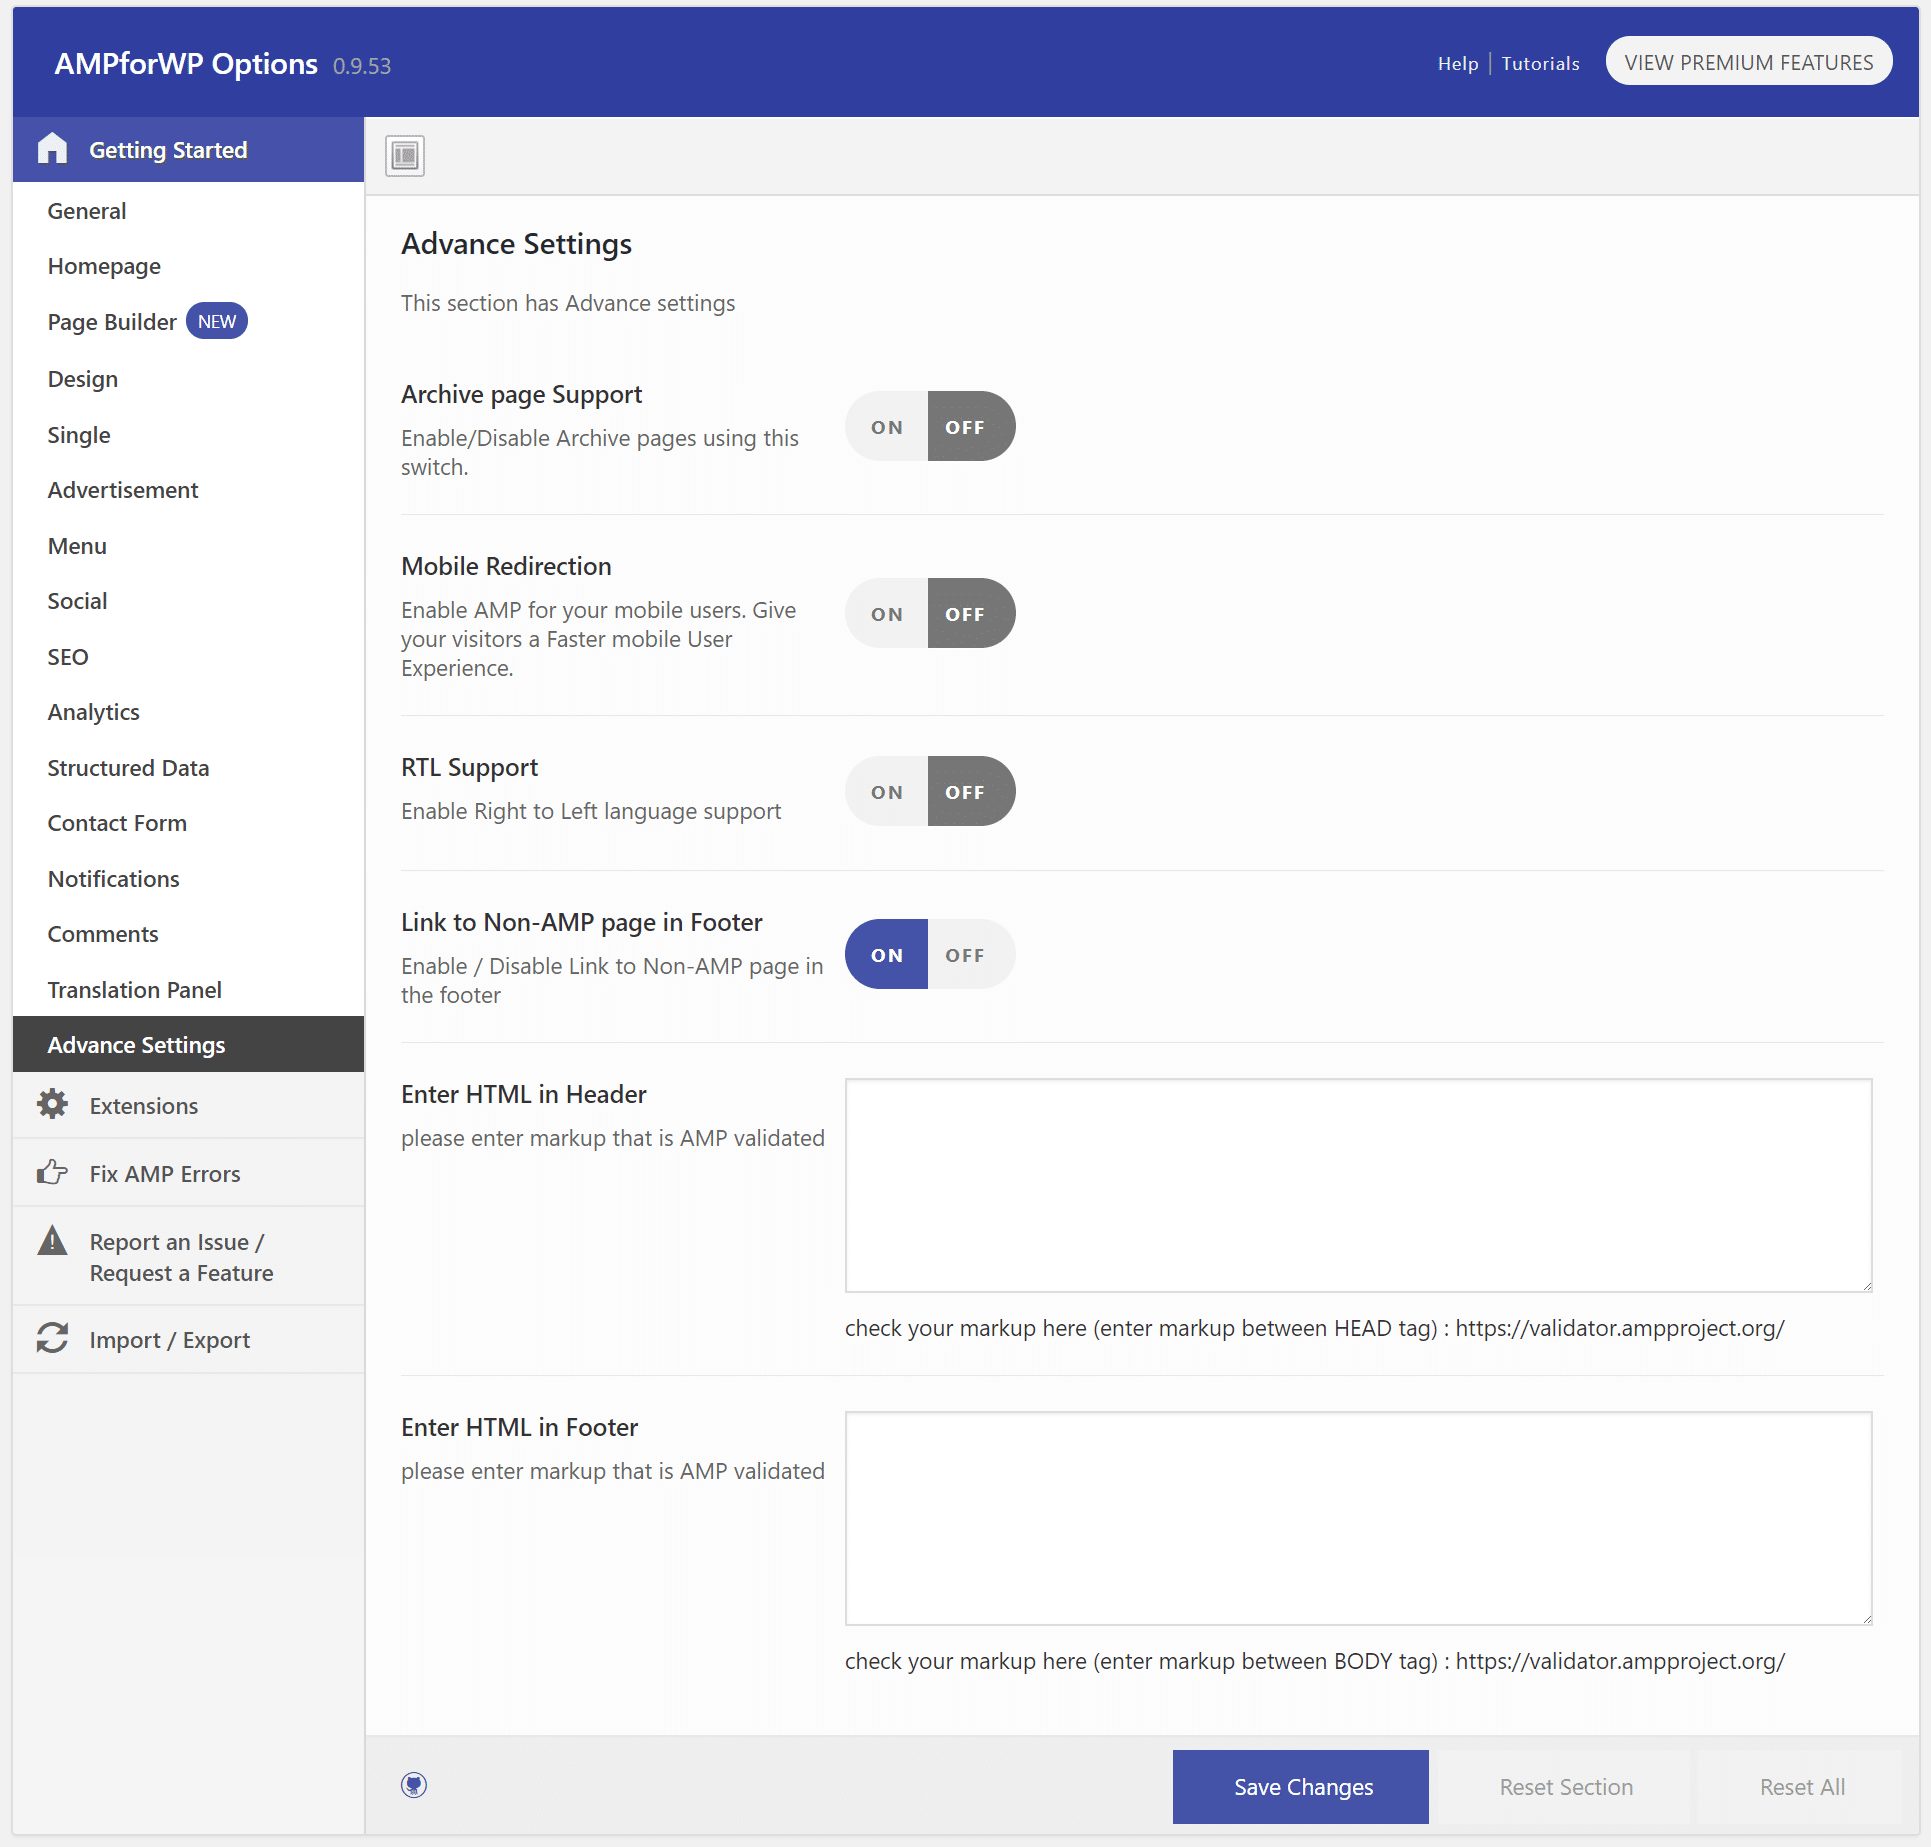 AMP Advanced Settings